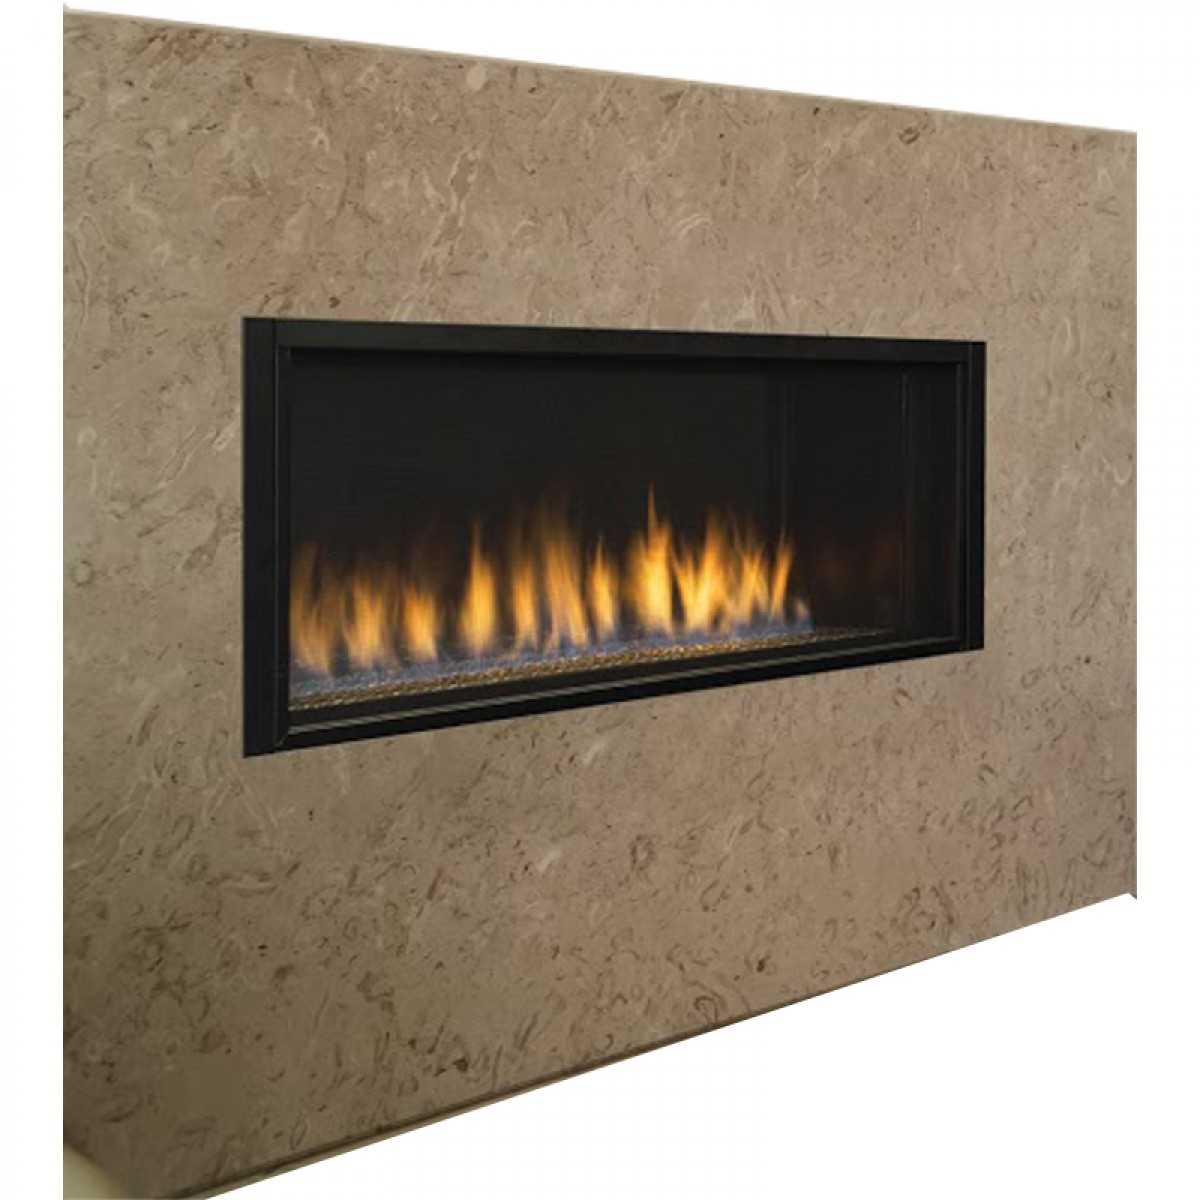 Ihp Superior Drl4543ten 43 Dv Linear Ng Fireplace